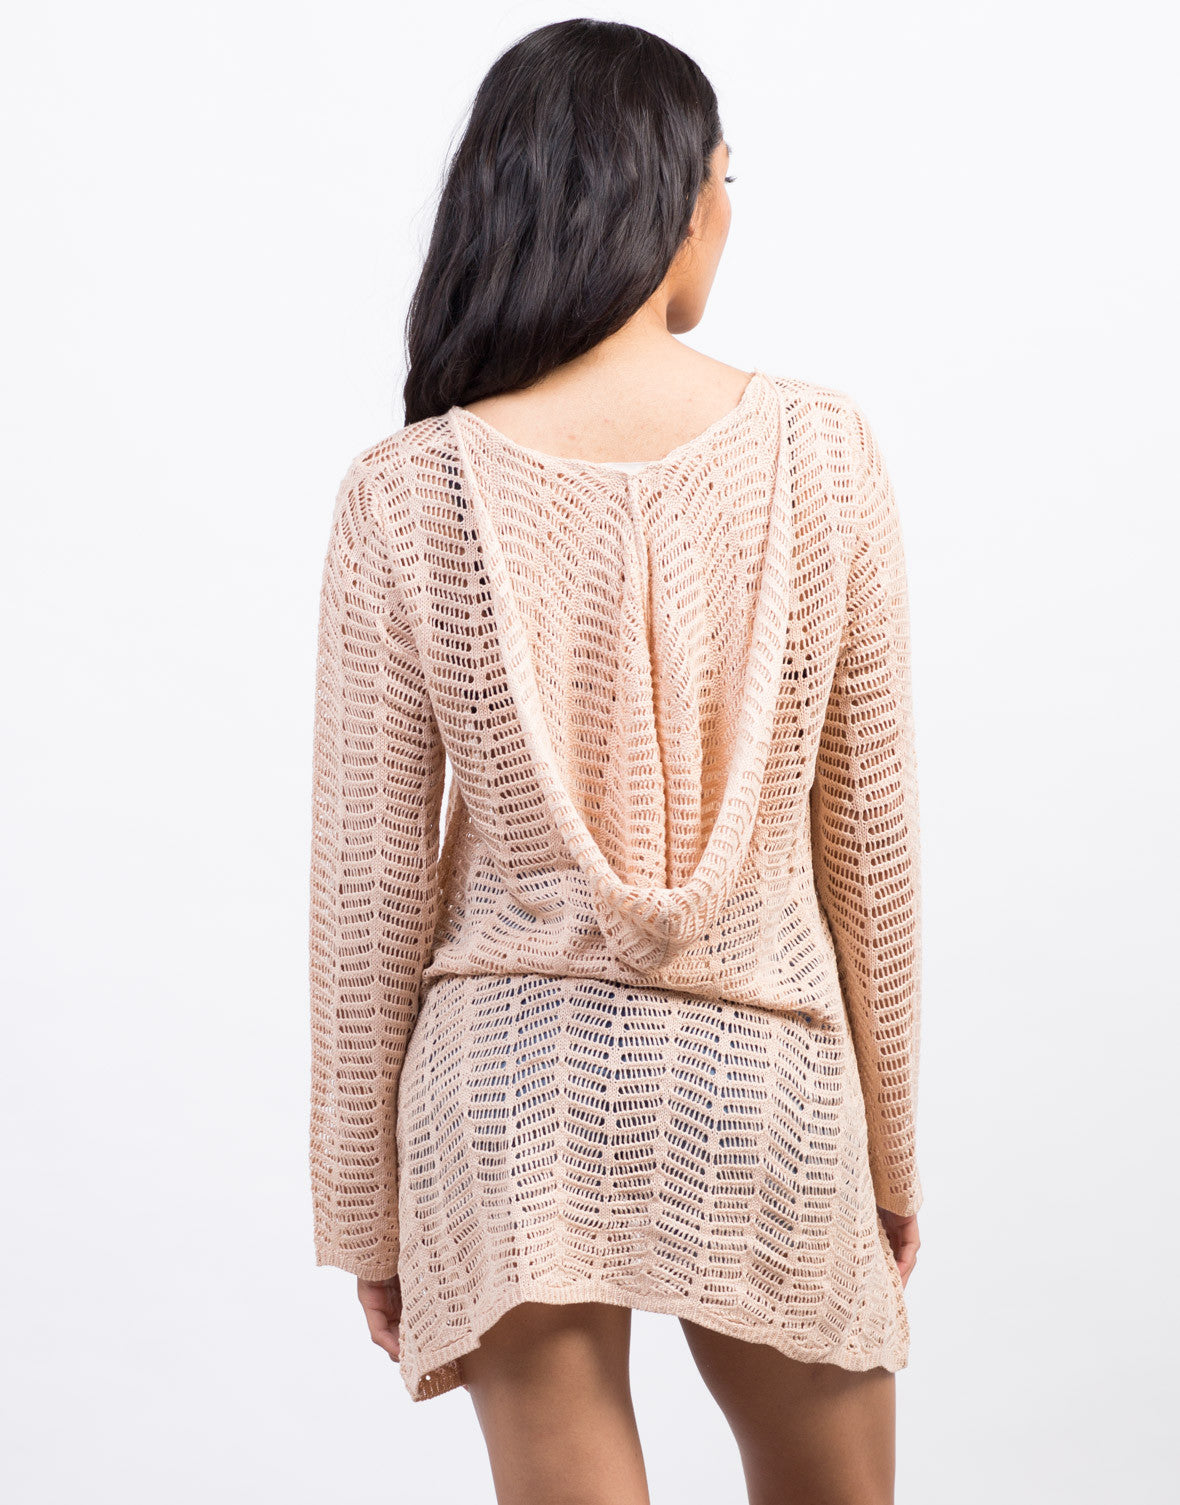 Back View of Lace-Up Knit Sweater Dress